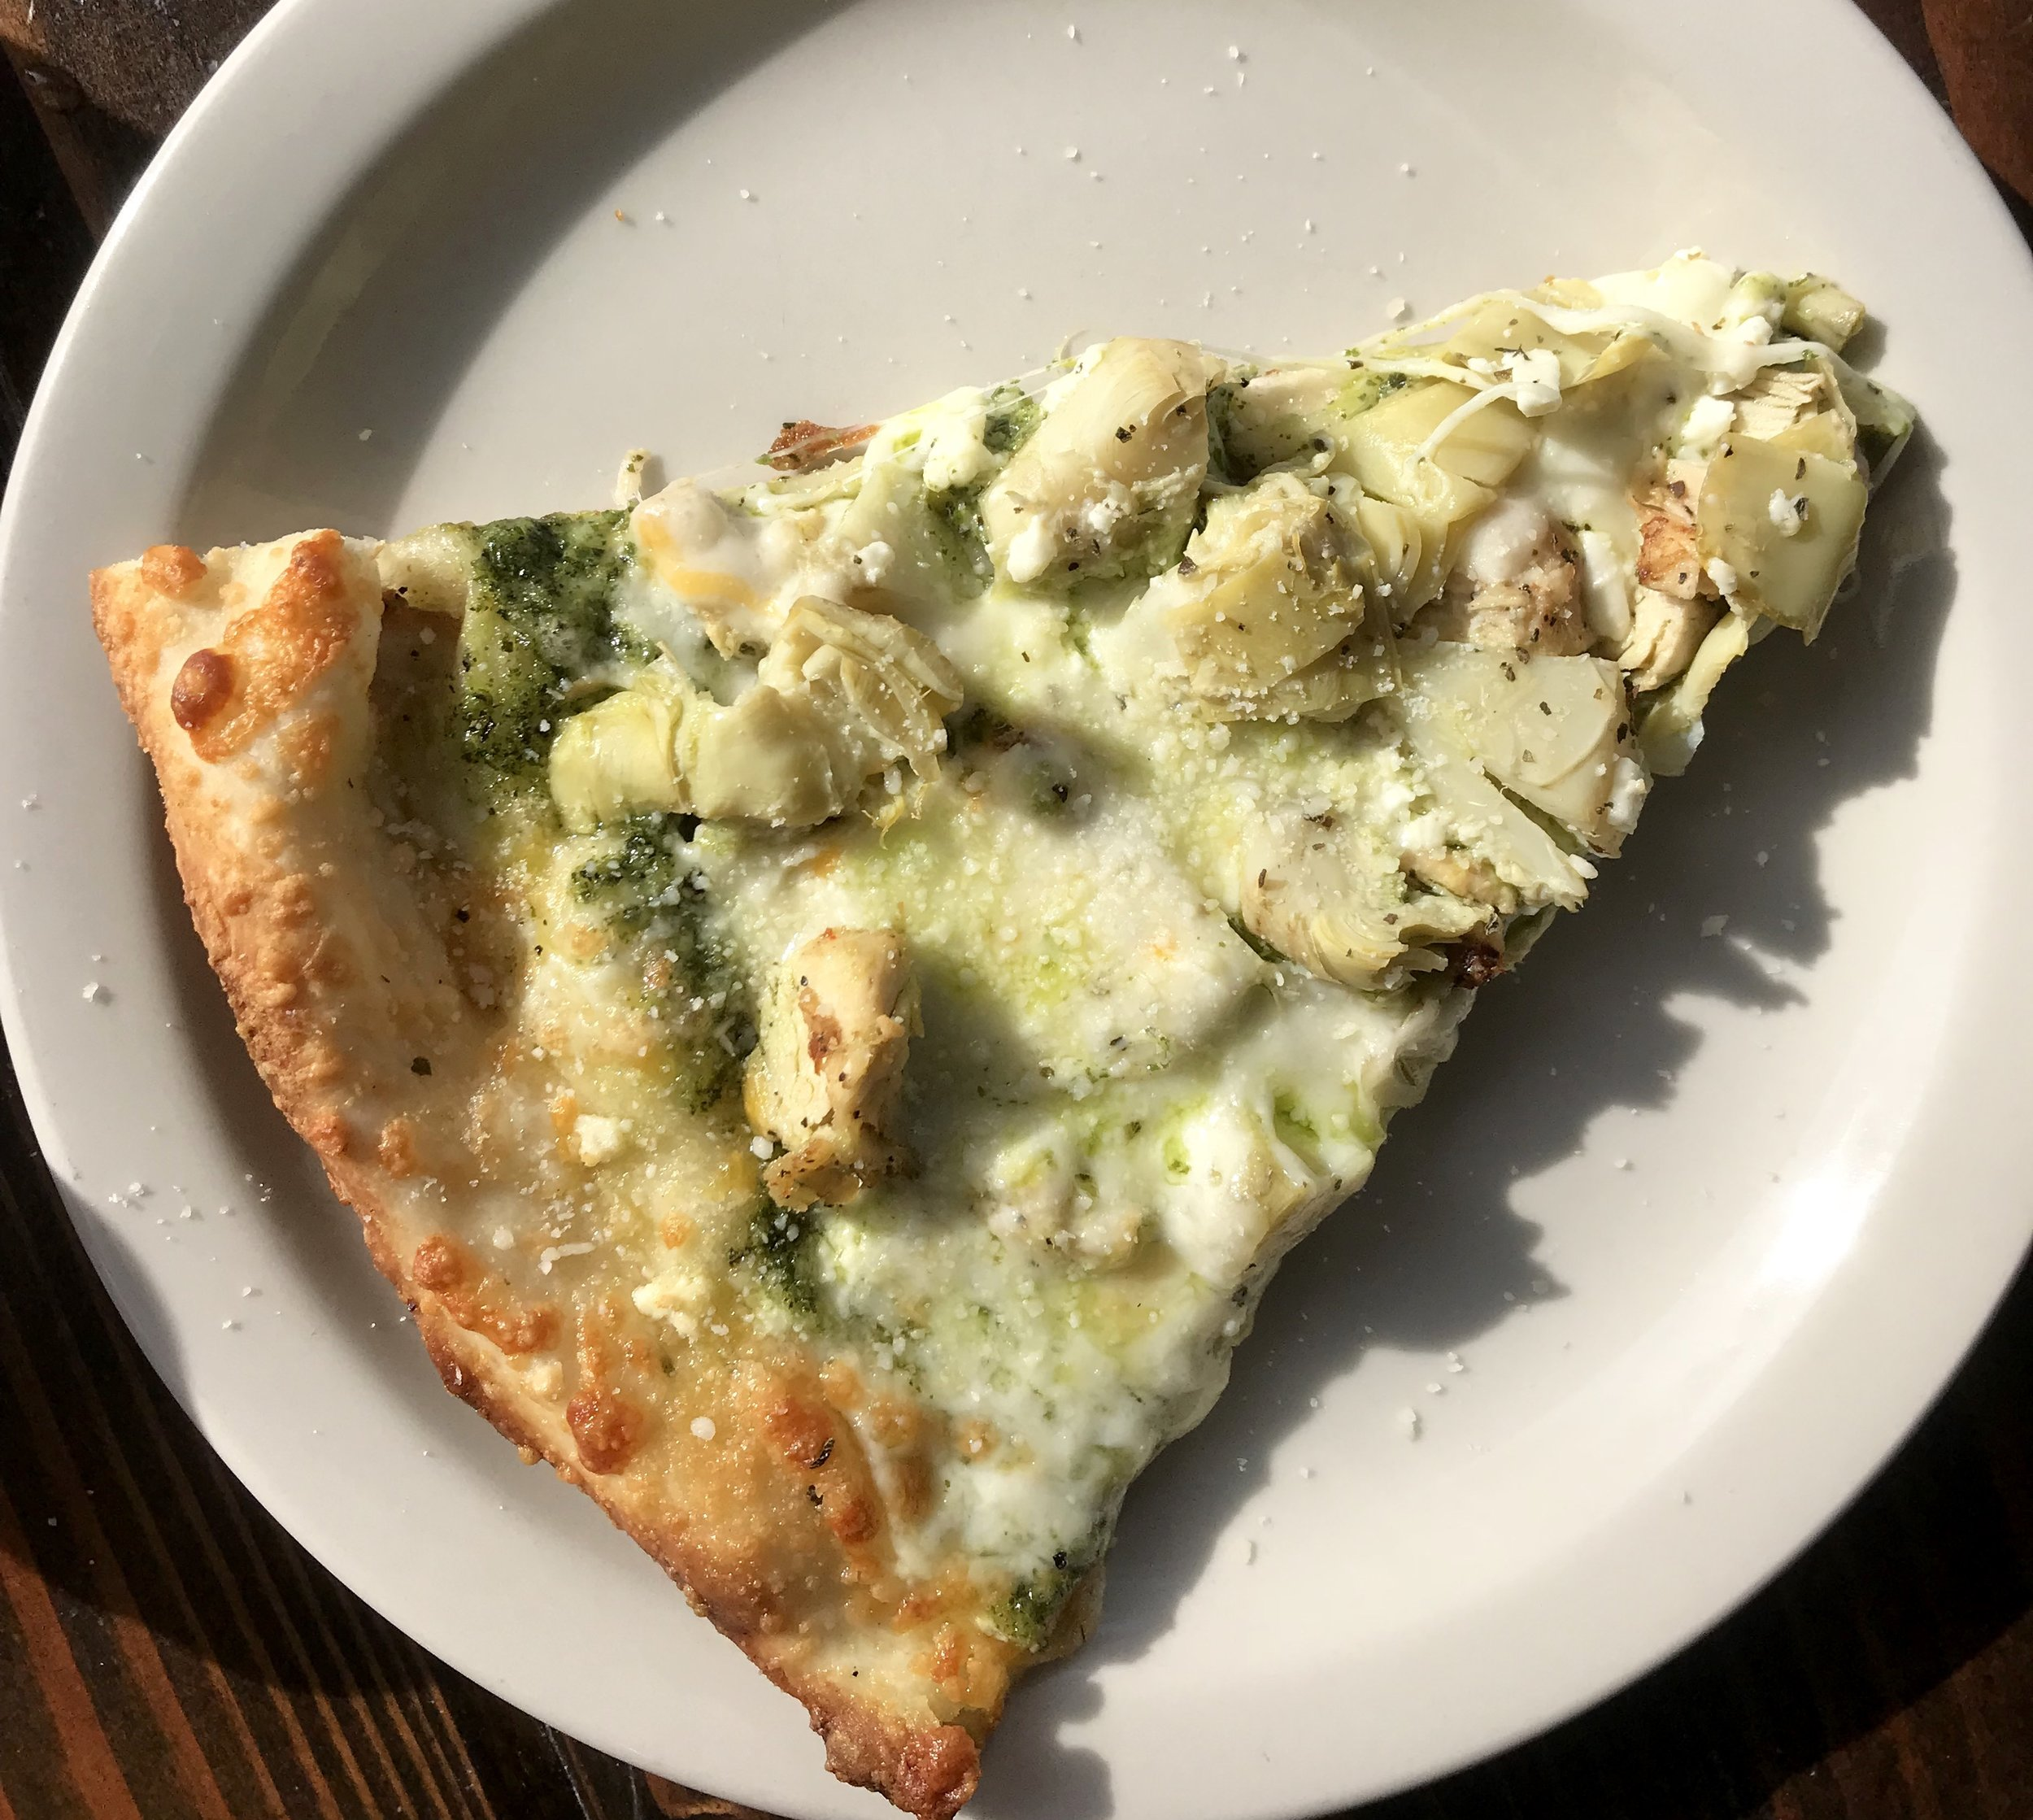 A picture of a lone slice bc I may or may not have already devoured the rest of the pizza before I remembered to take a picture…